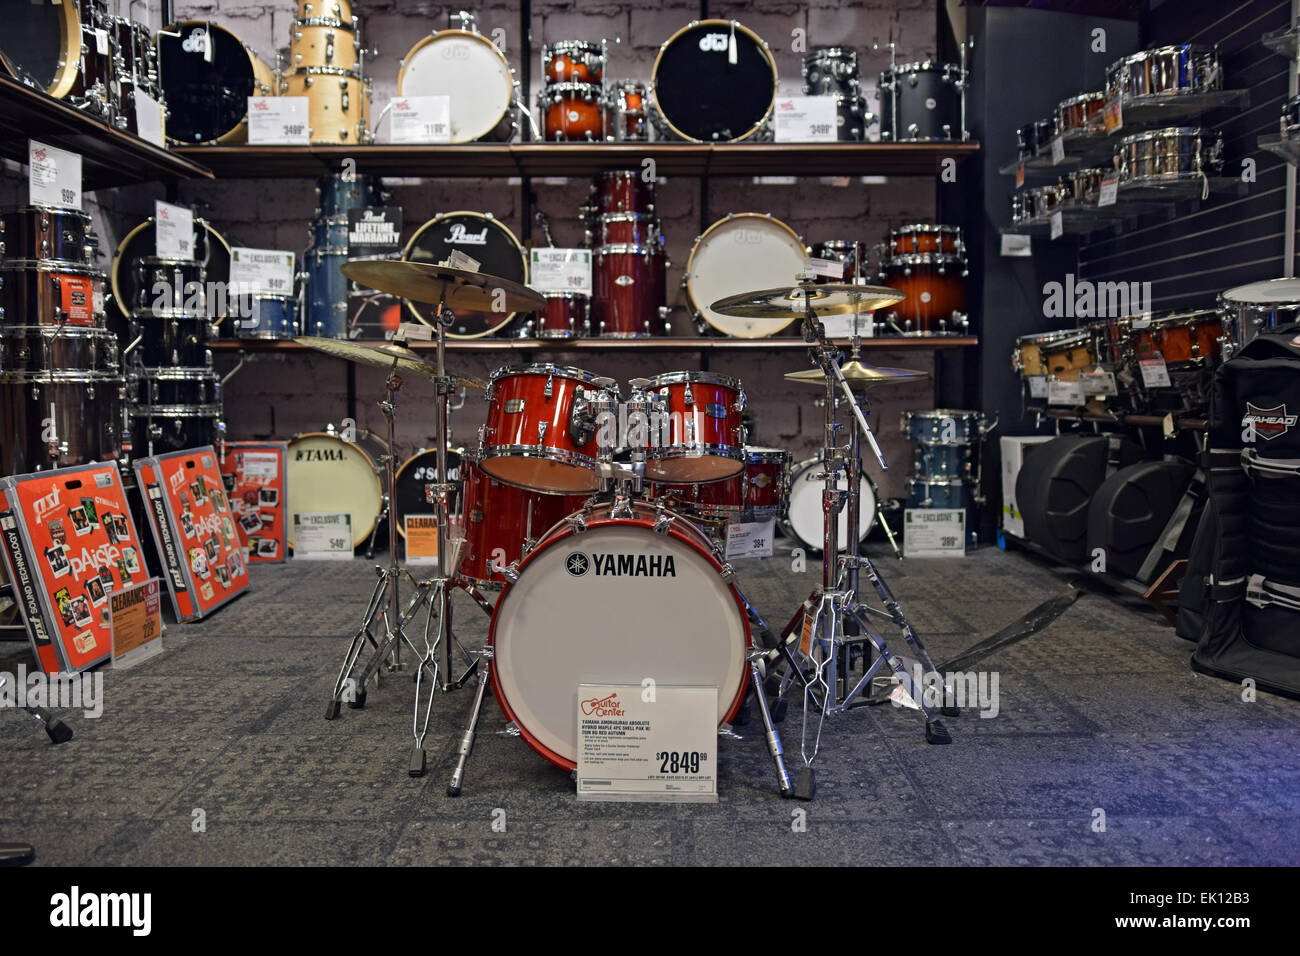 drum kits and percussion instruments for sale at the guitar center on stock photo 80543767 alamy. Black Bedroom Furniture Sets. Home Design Ideas